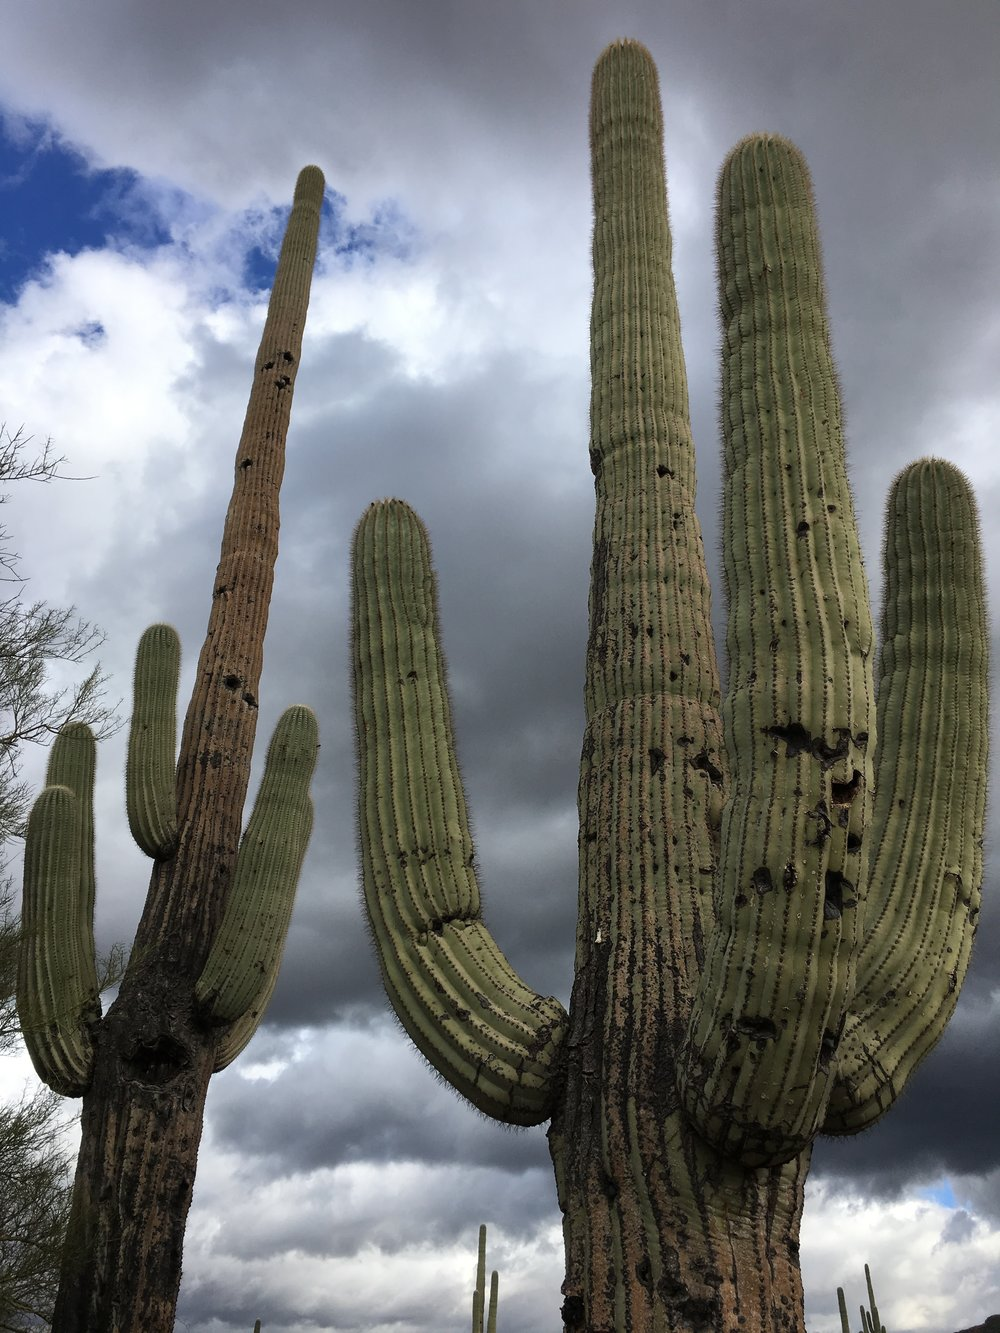 Saguaro cacti – the sentinels of the desert